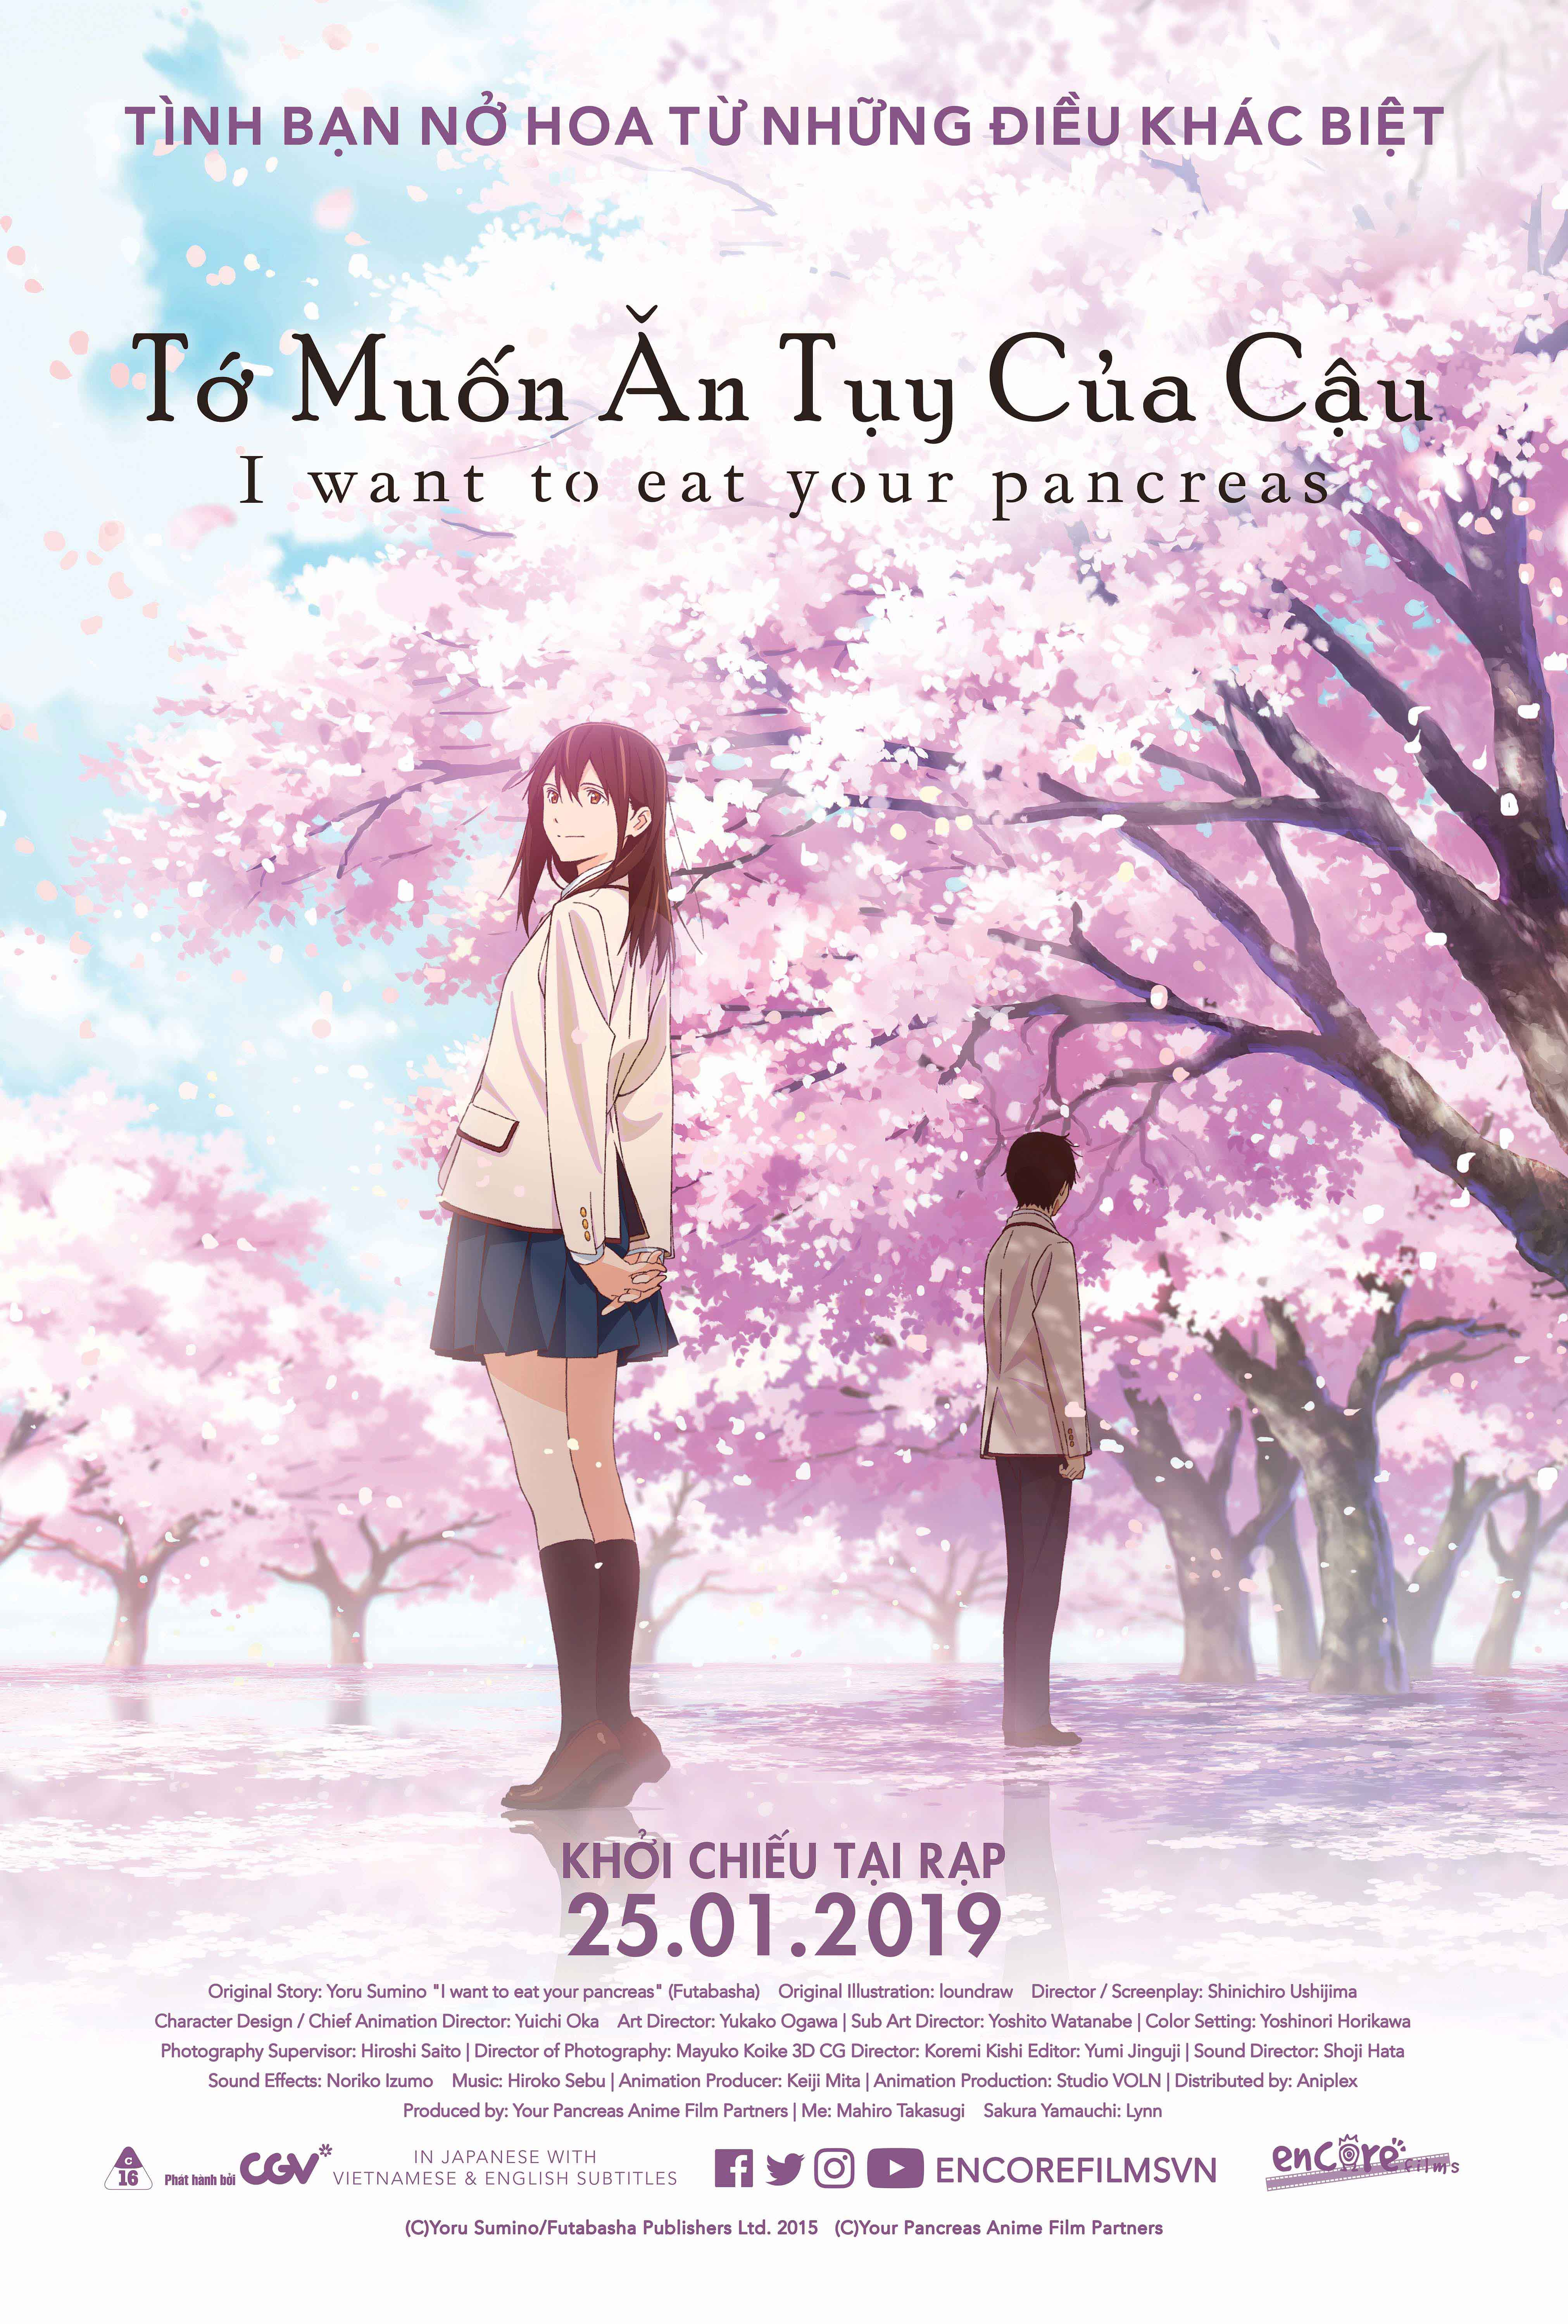 193 - I Want to Eat Your Pancreas 2019 - Tớ Muốn Ăn Tụy Của Cậu